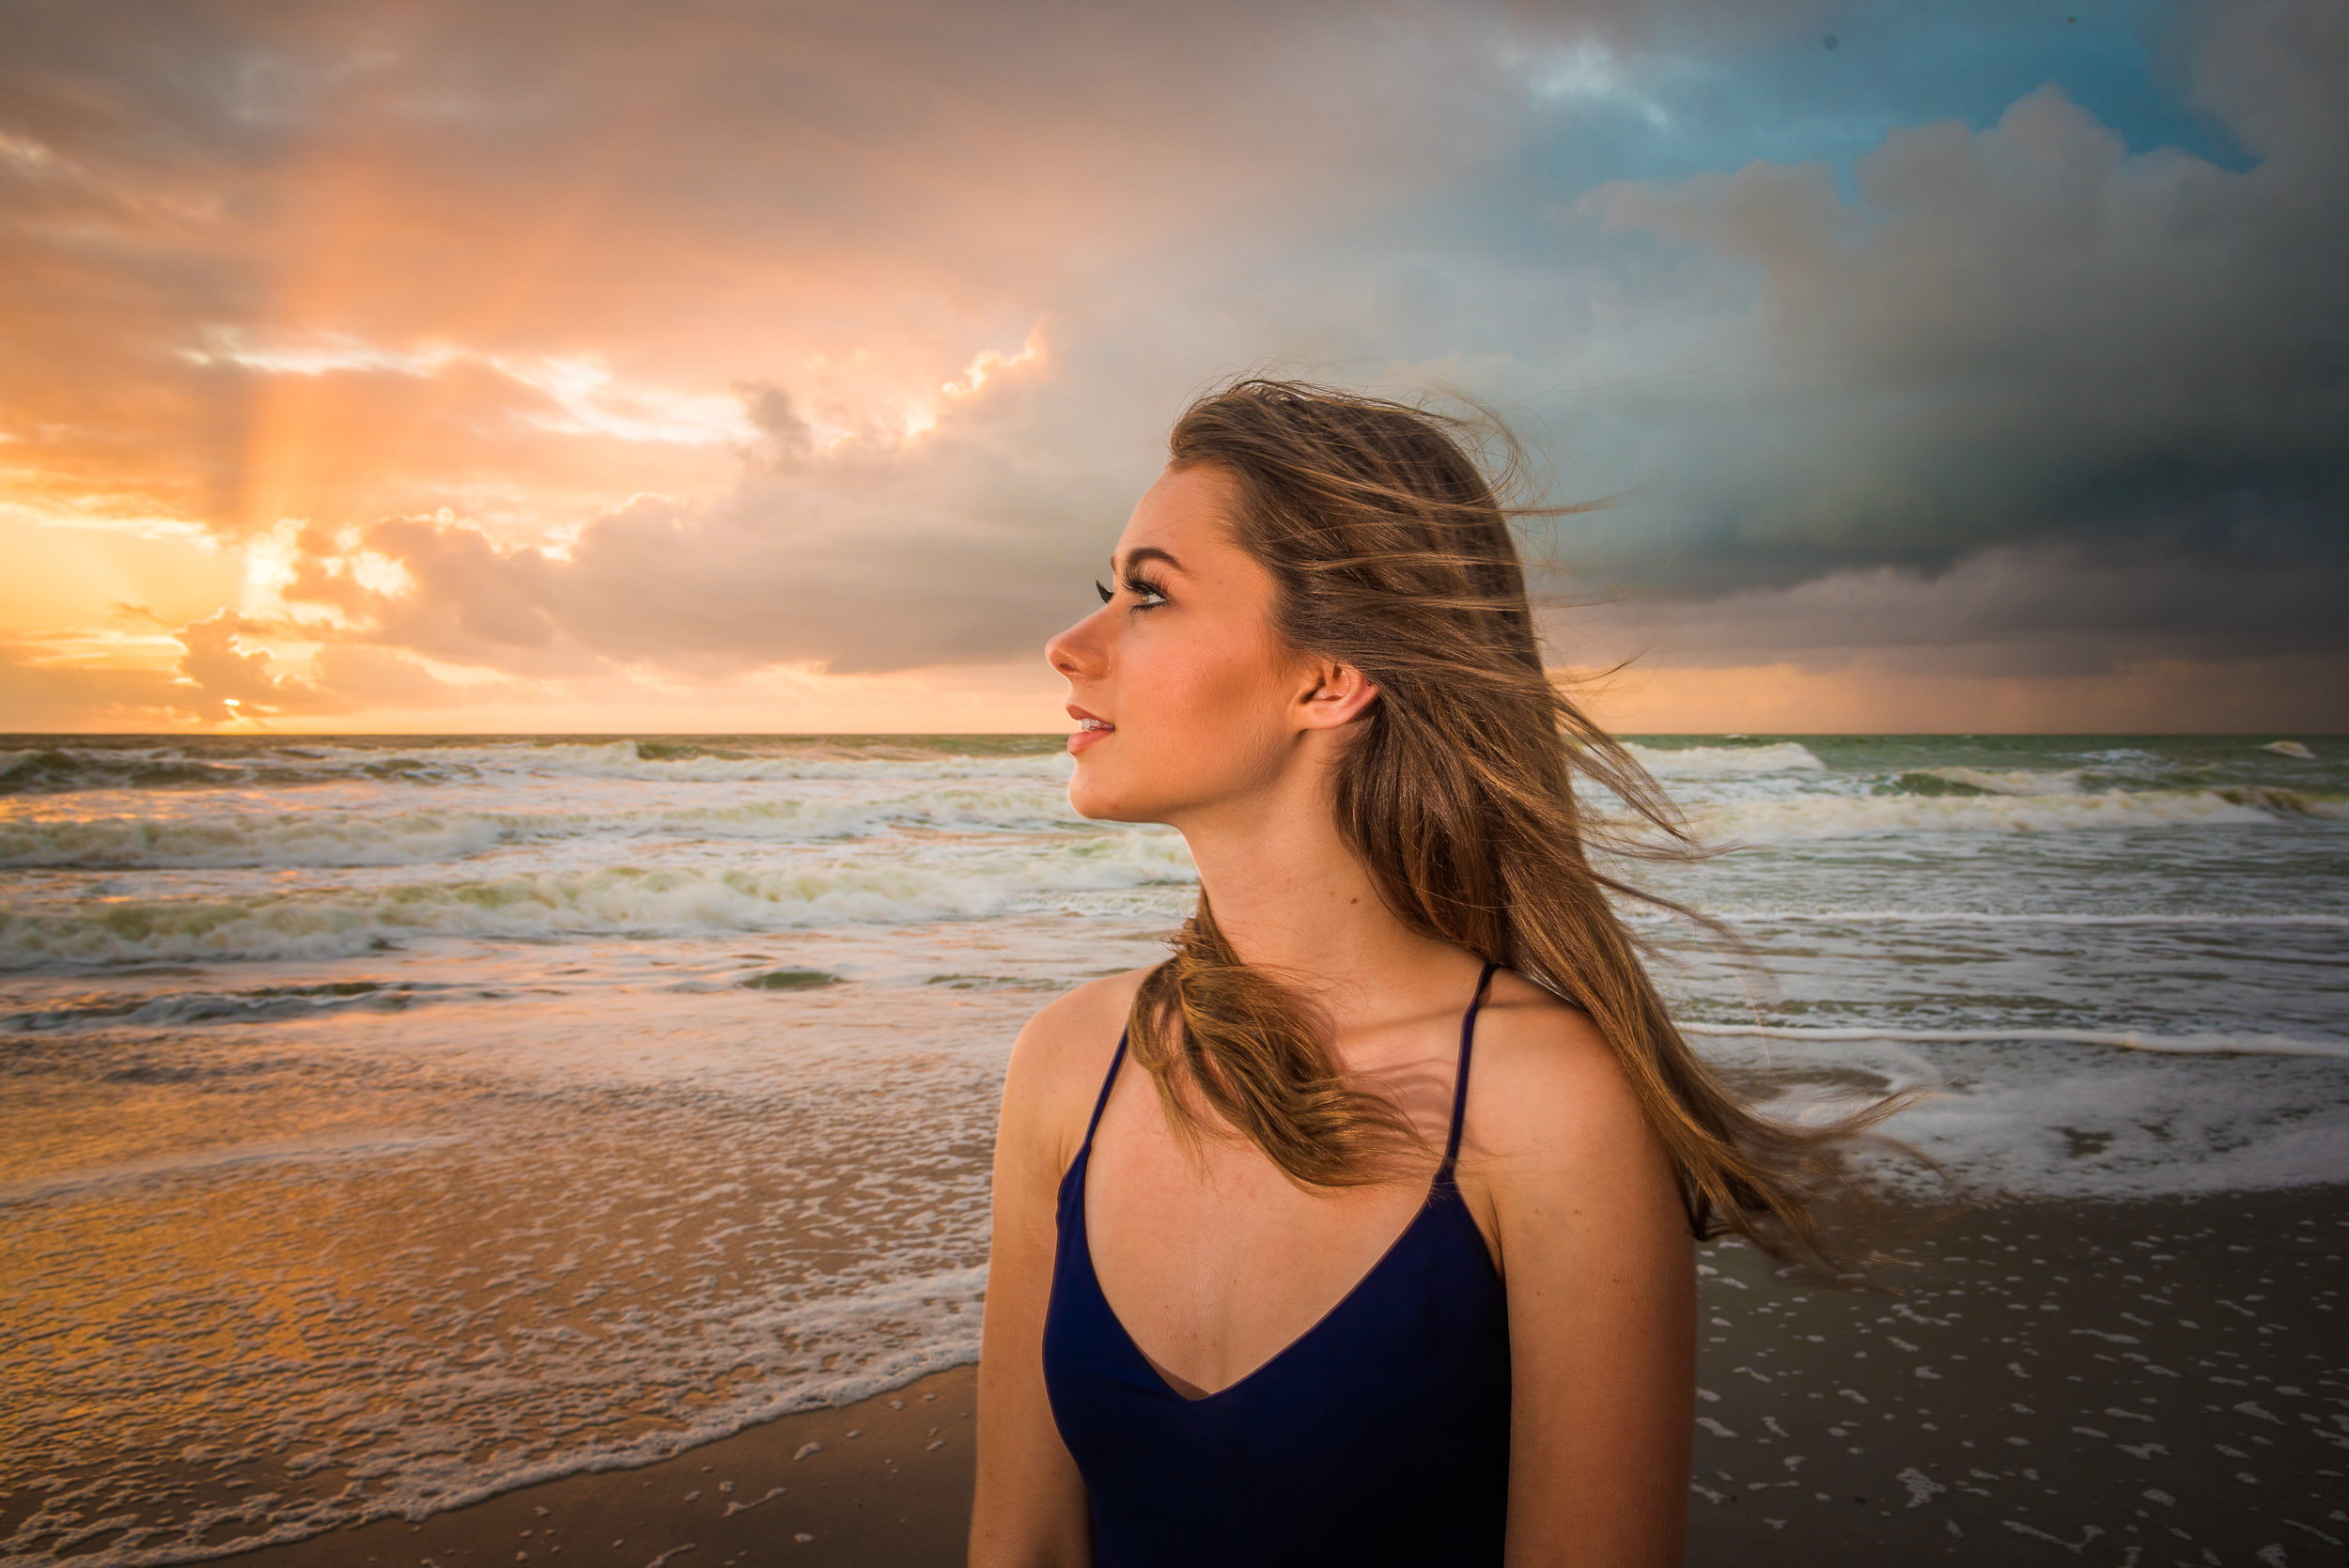 heather-senior-picture-sunrise-beach-session-1-3.jpg